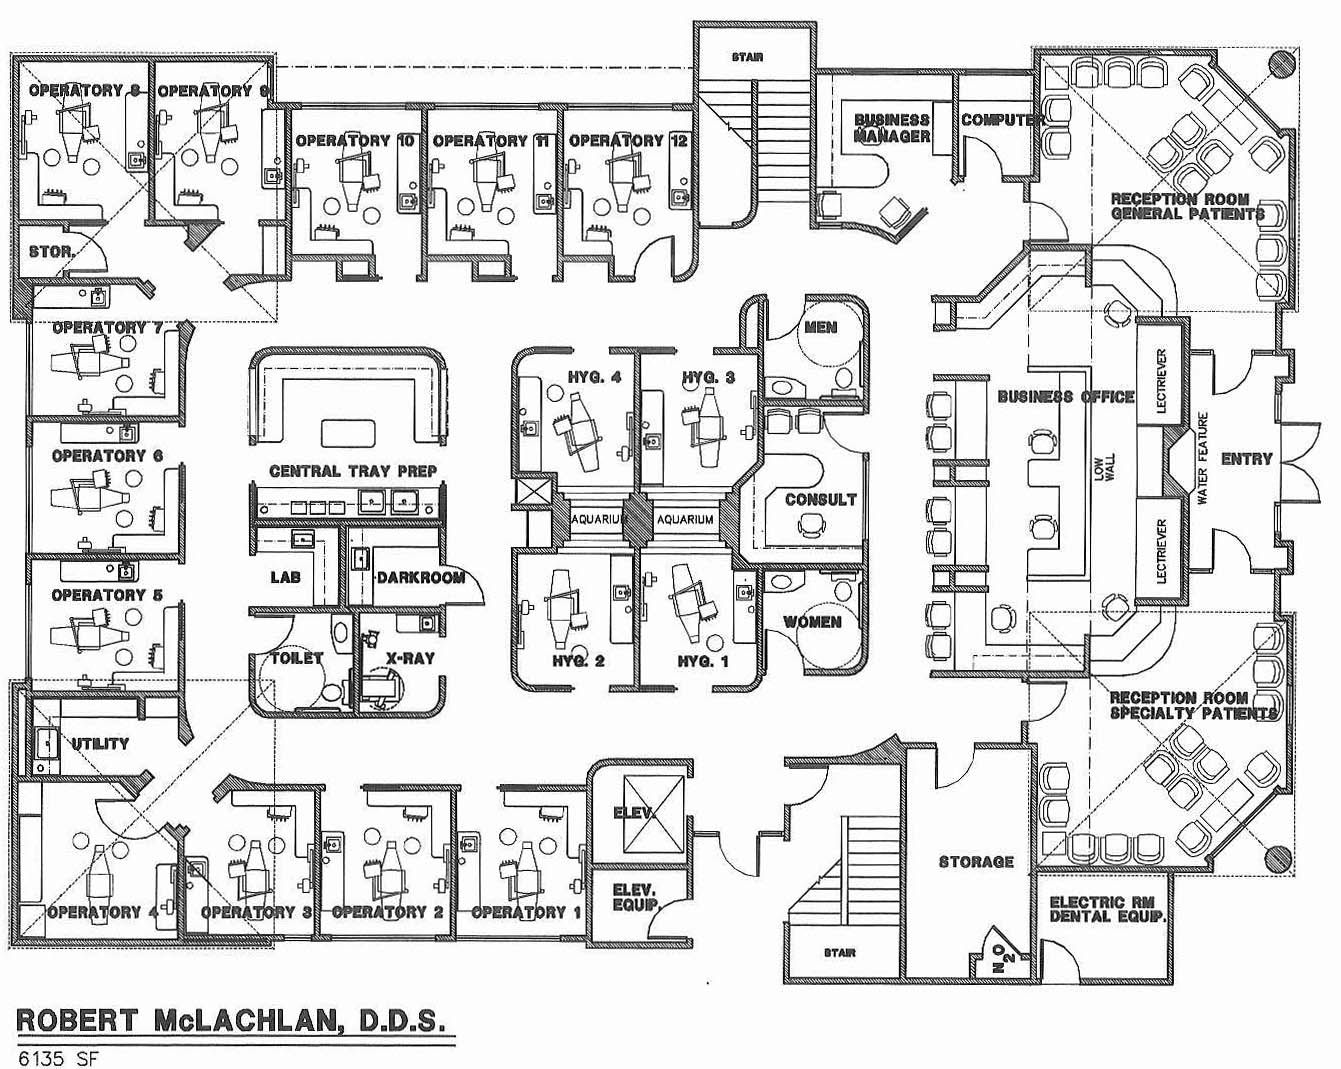 office floor plan design. medicalofficefloorplans28jpg 13411069 office floor plan design m